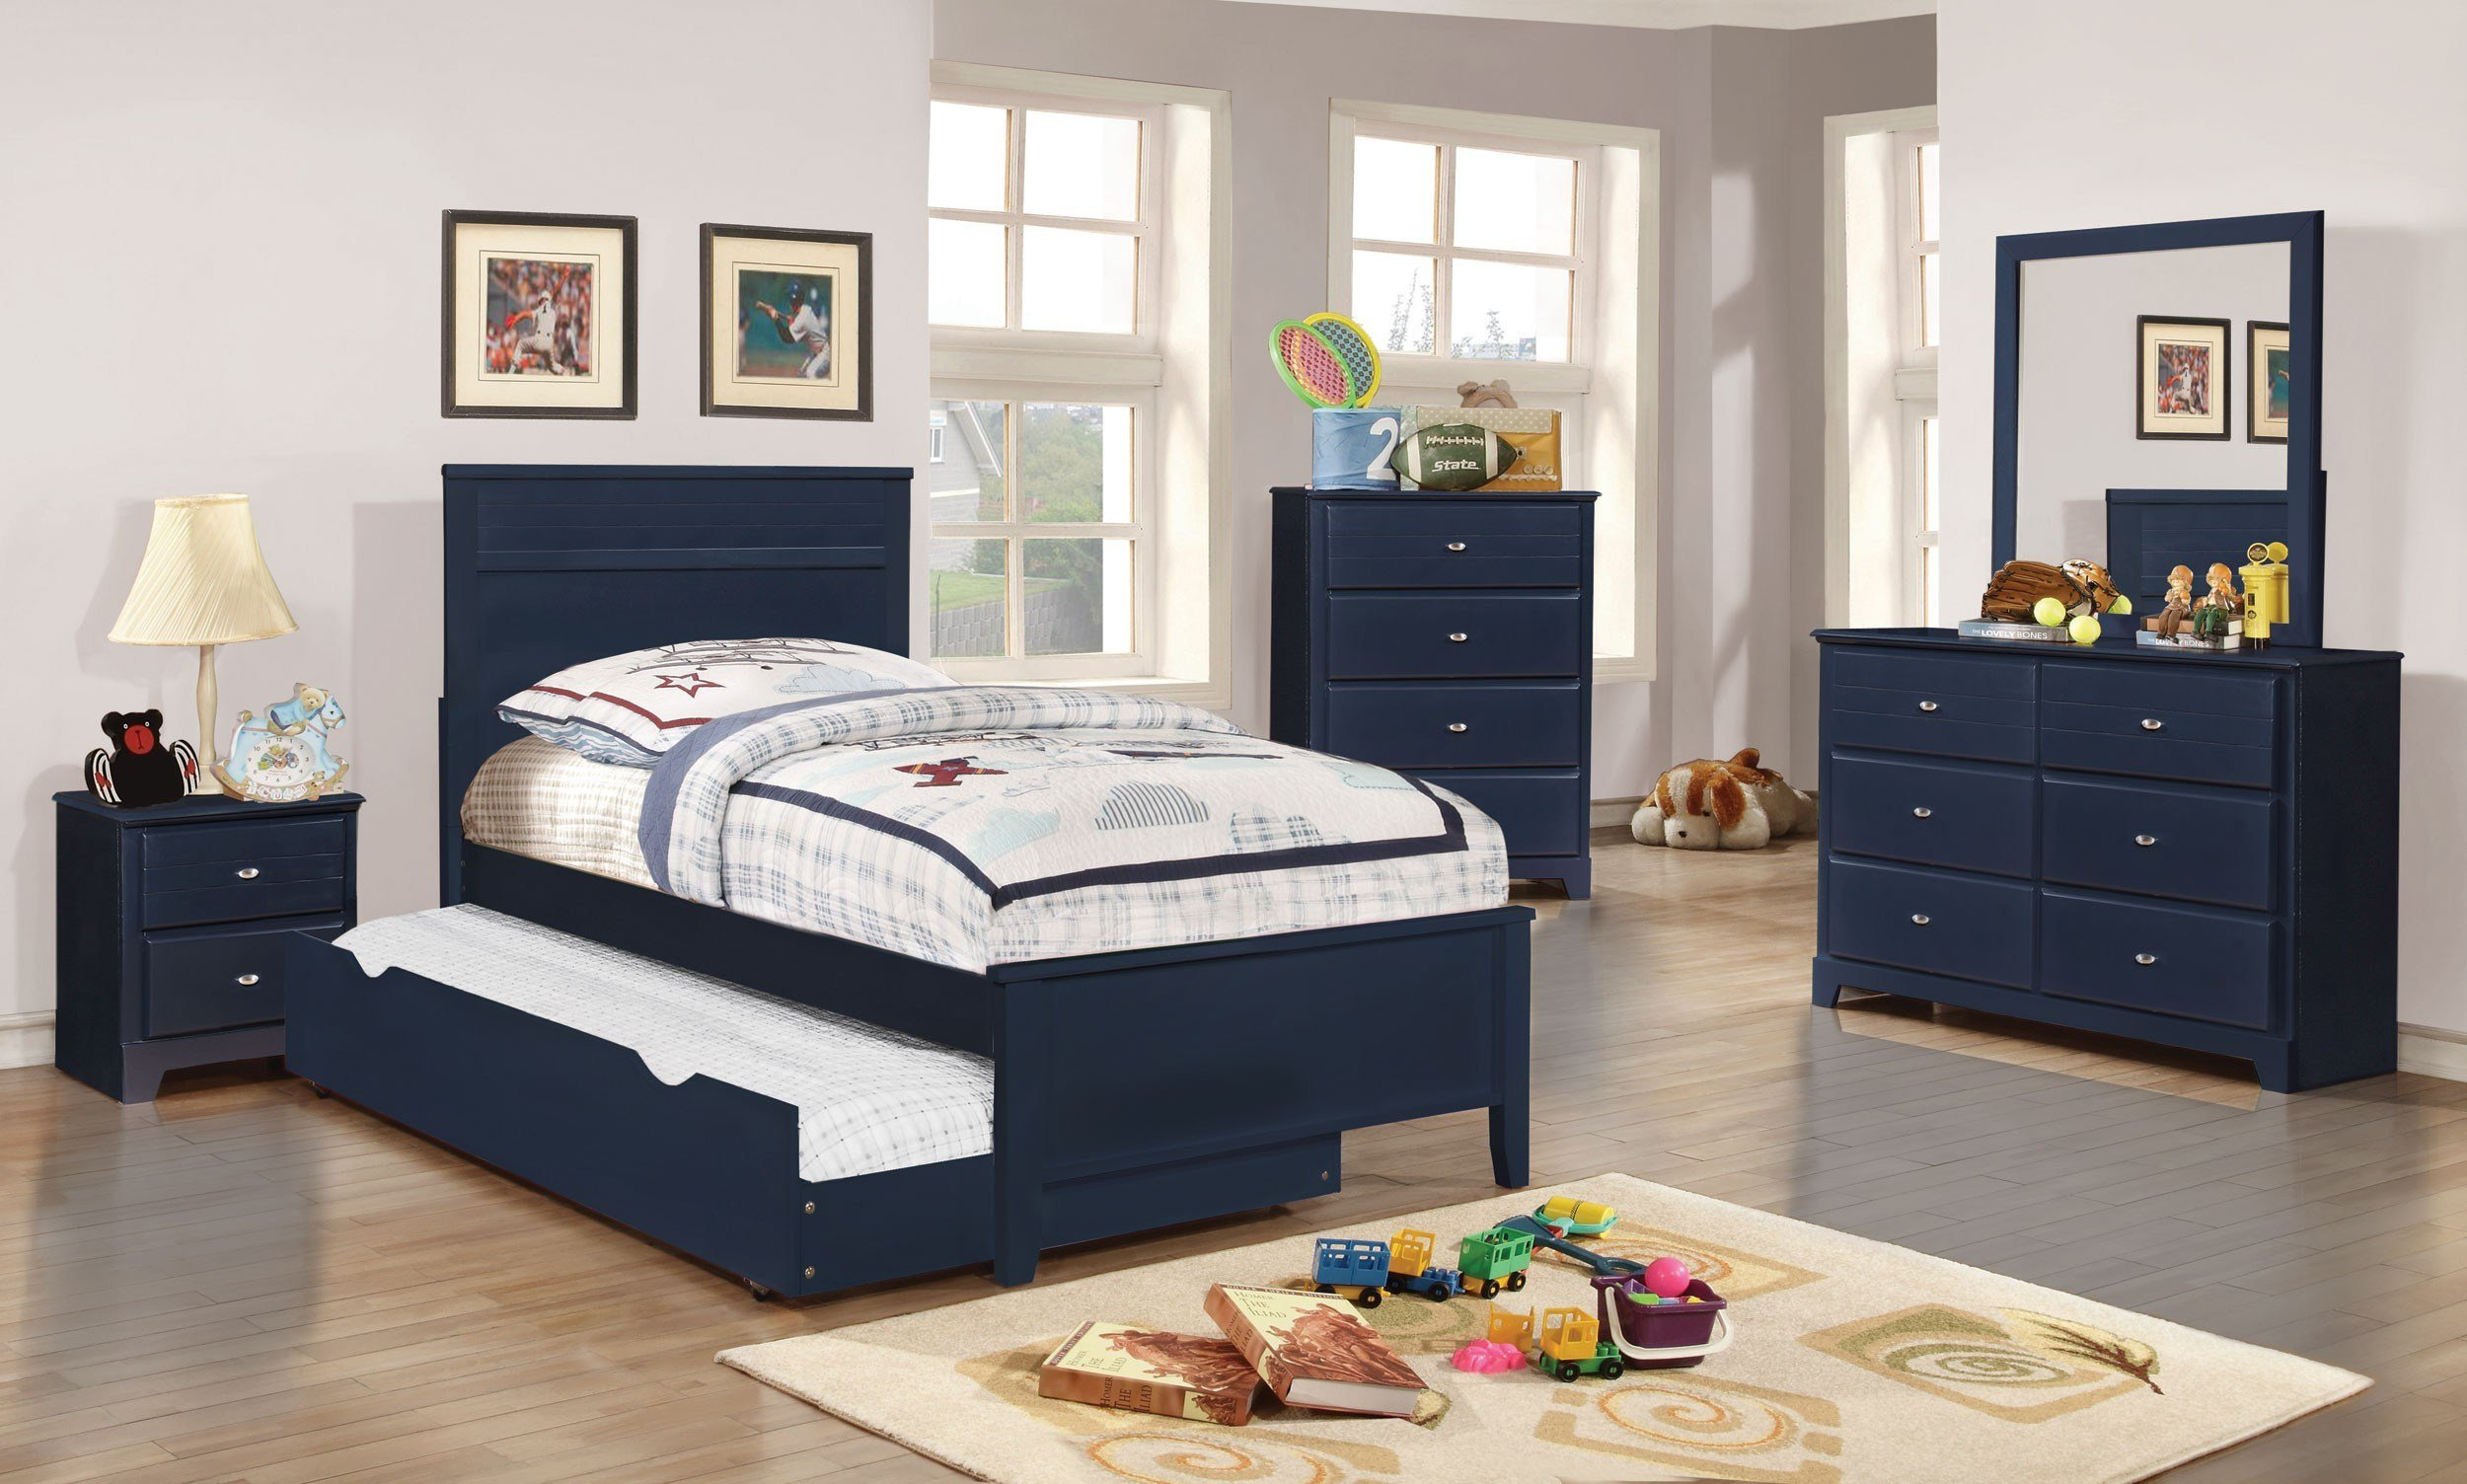 Best Navy Blue Bedroom Furniture Imagestc Com With Pictures